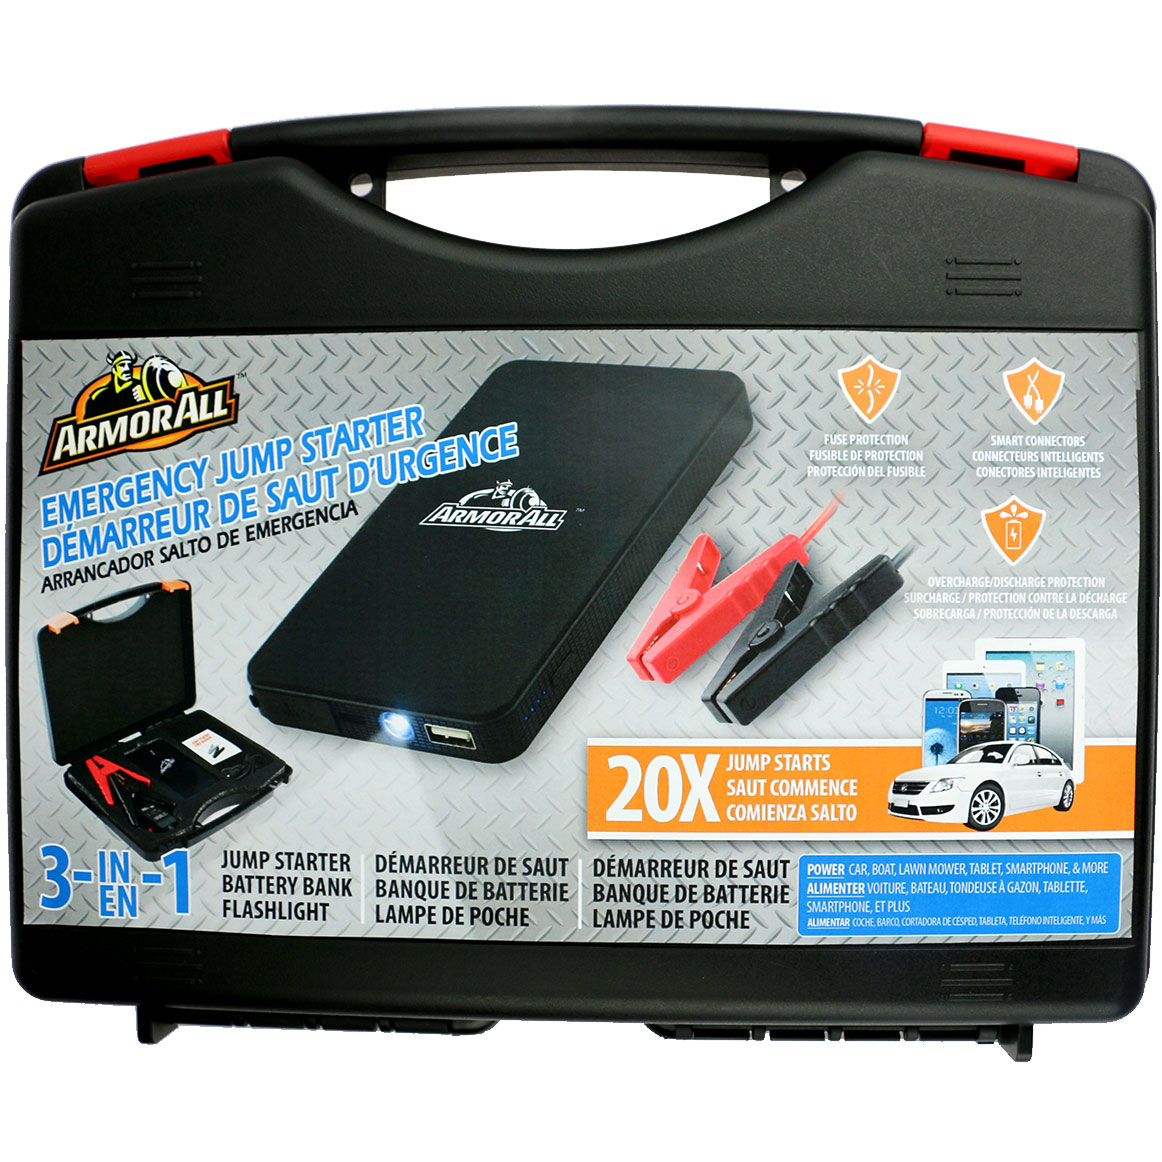 Armorall Jump Starter Kit With 6000mah Battery Bank 5722771854082 Car Fuse Box Jumper Catalog Xtrajs81001 Mfg Part Ajs8 1001 Condition Brand New Usa Warranty